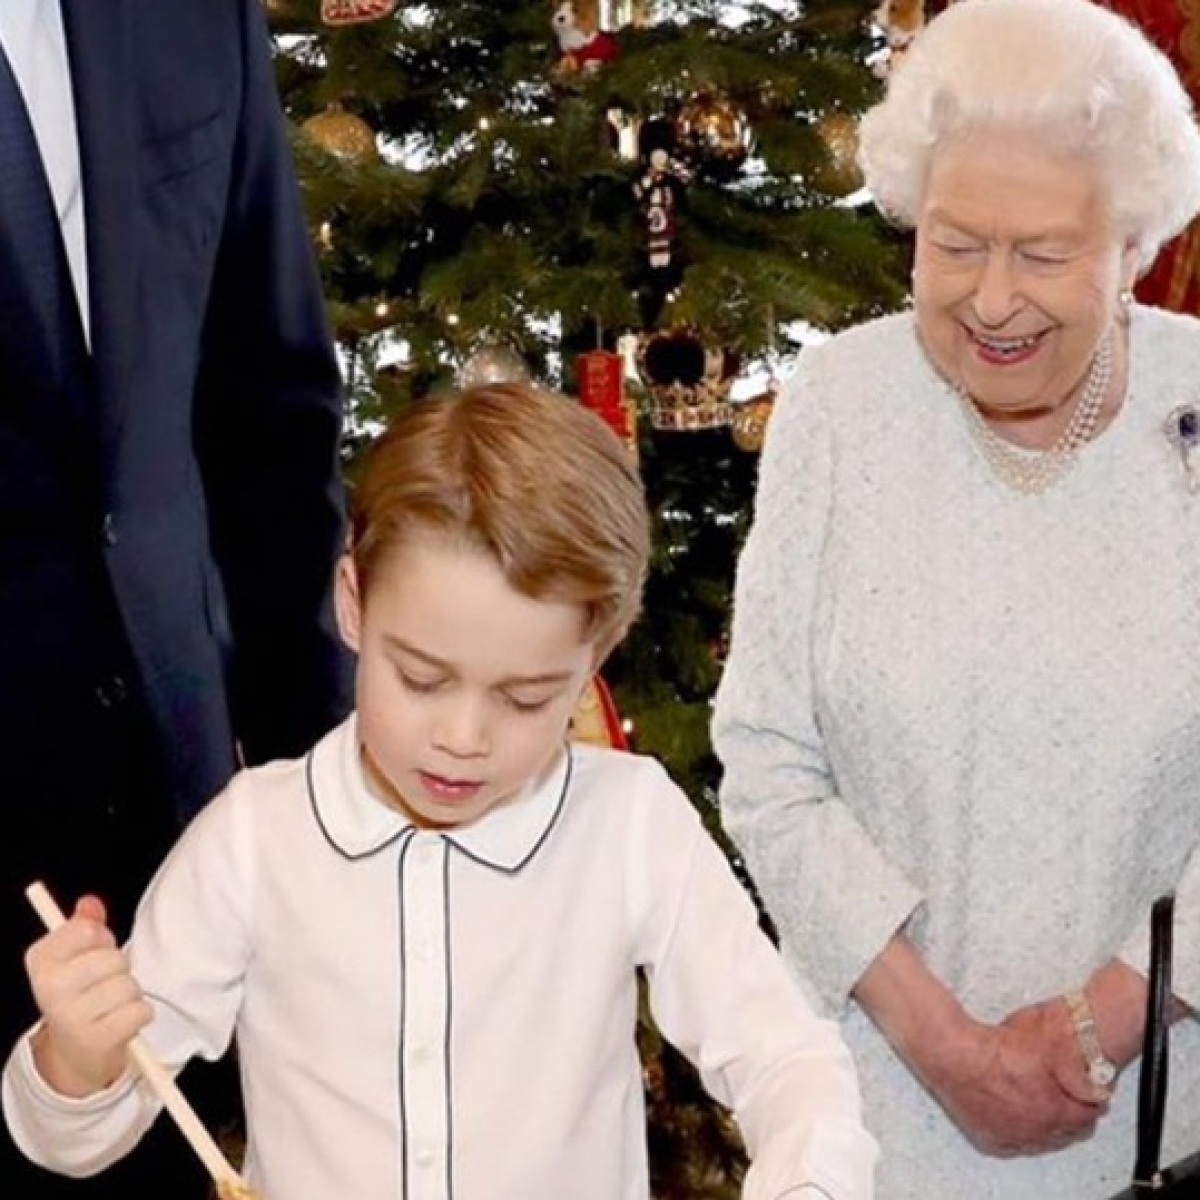 Prince George turns chef, makes Christmas pudding with the royal family